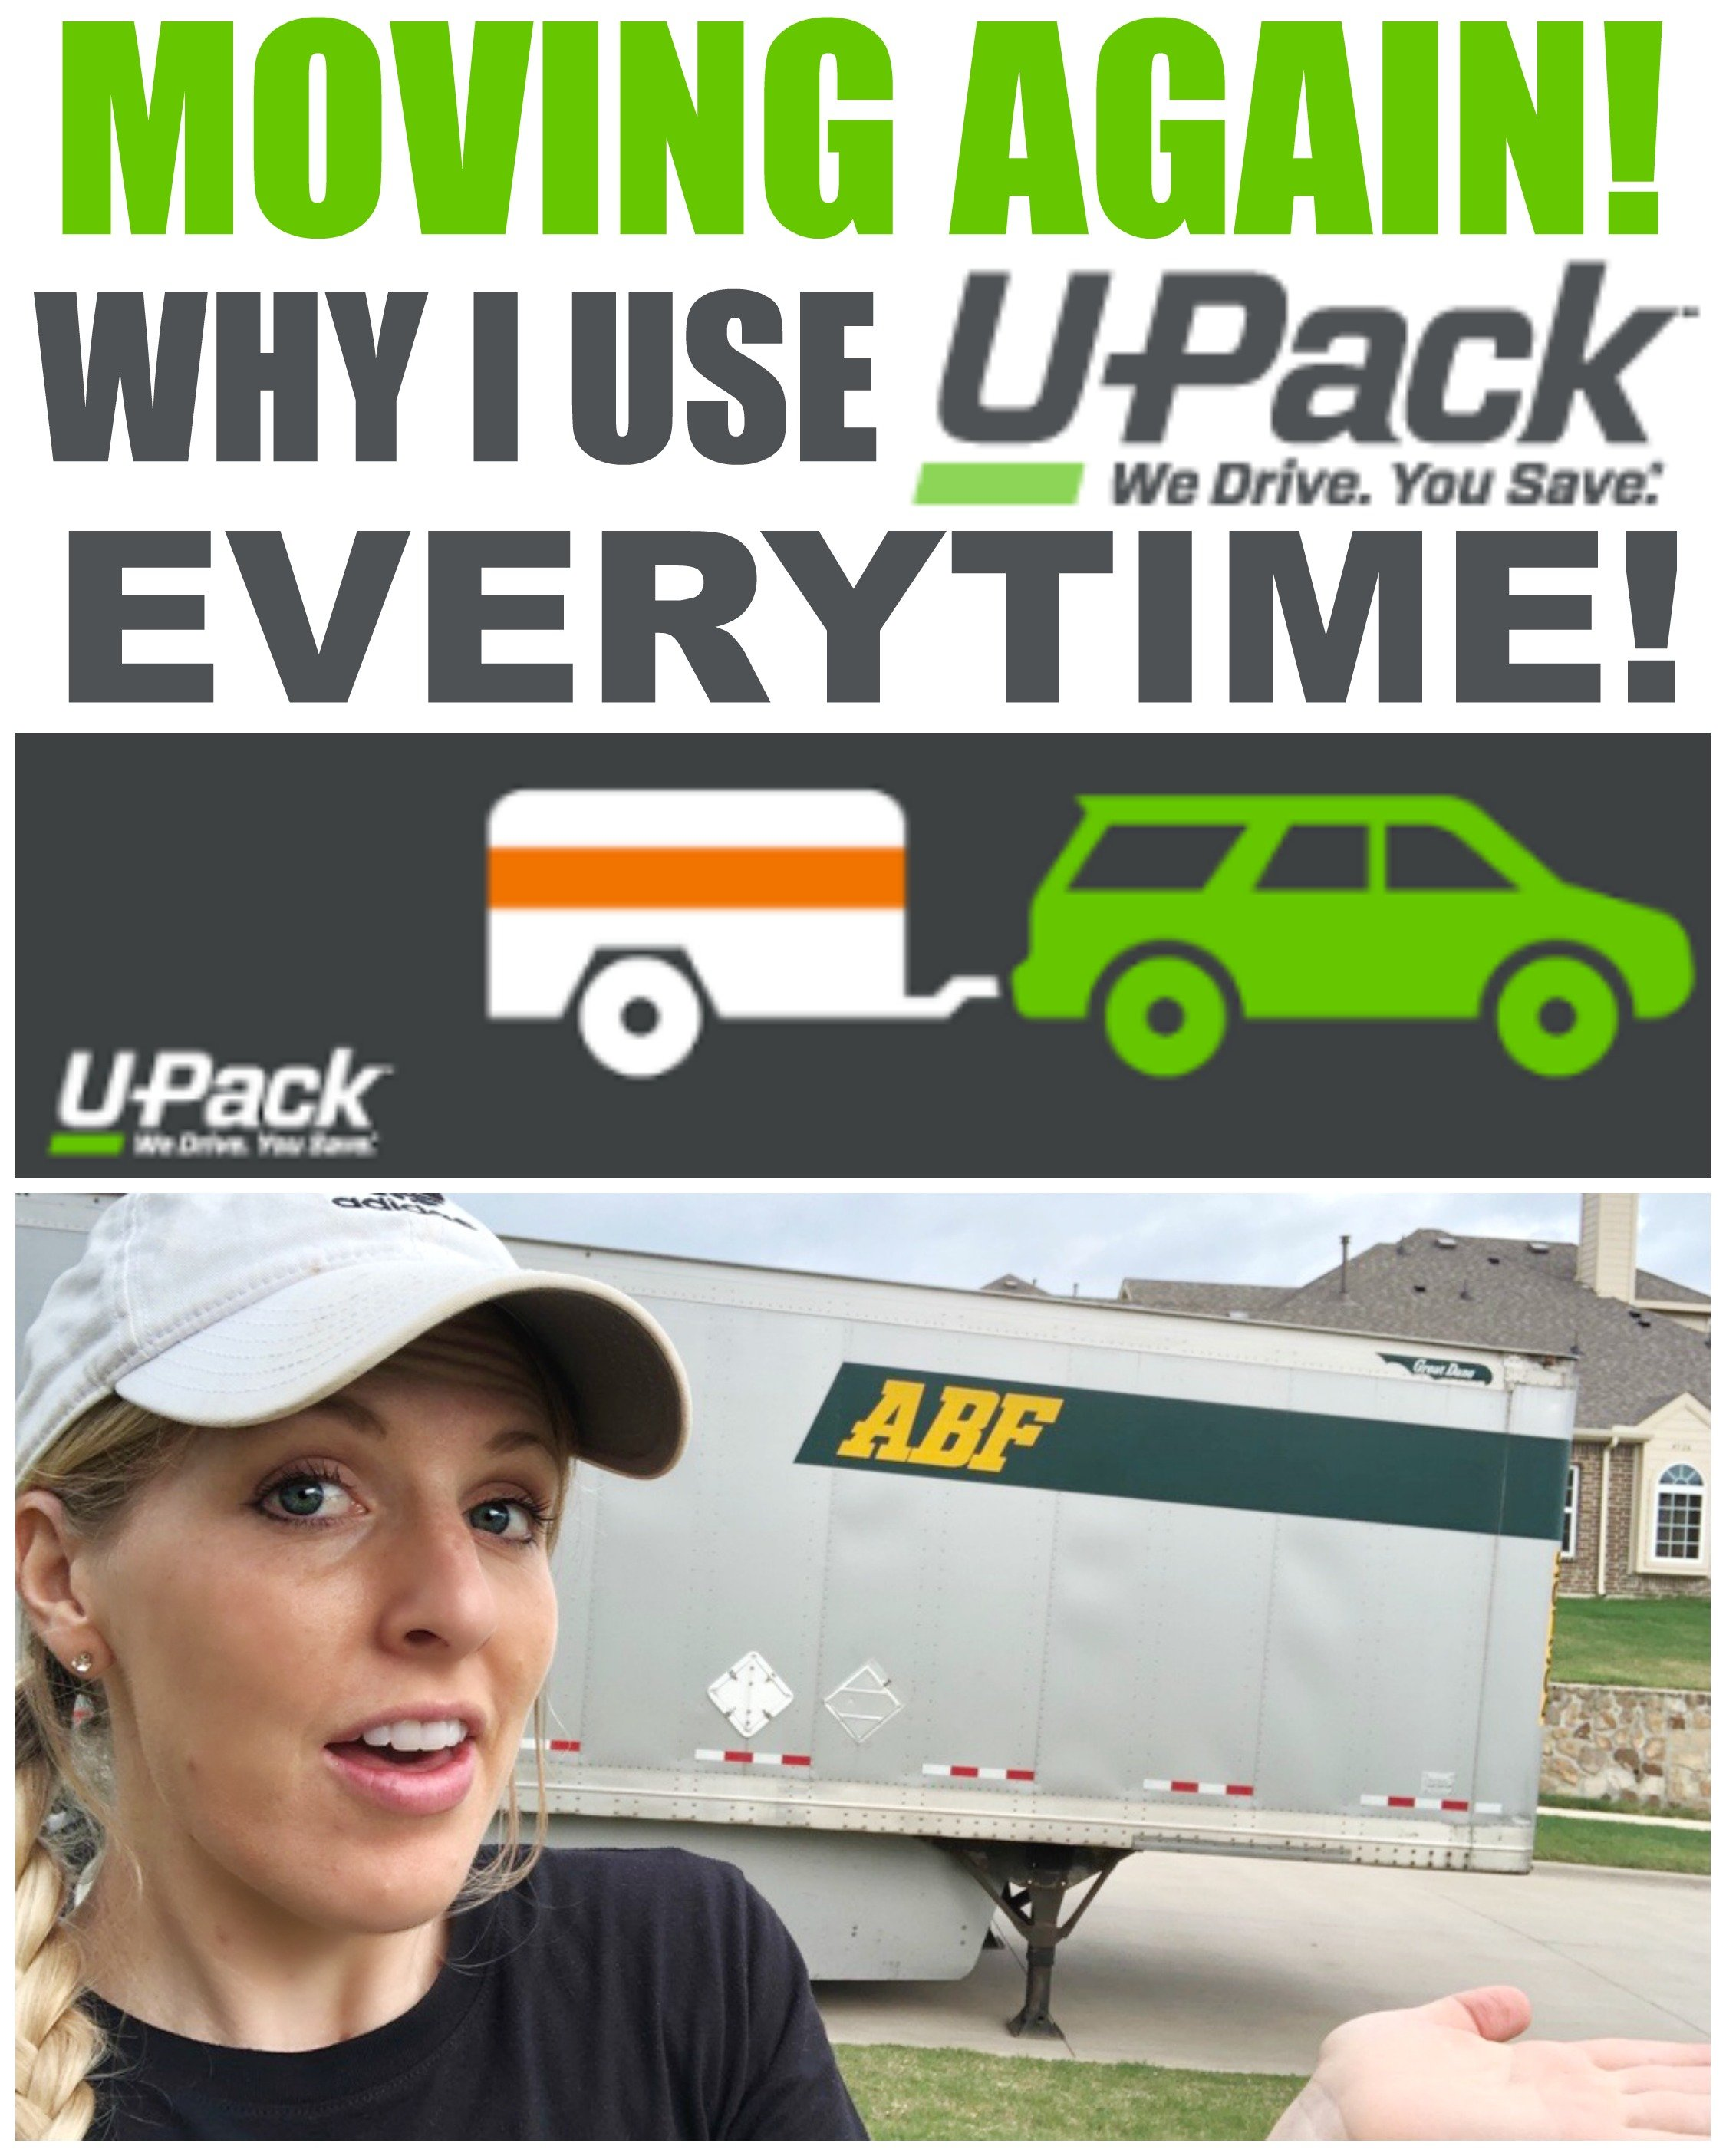 MOVING AGAIN! Why I Use U-Pack Every Time We Move